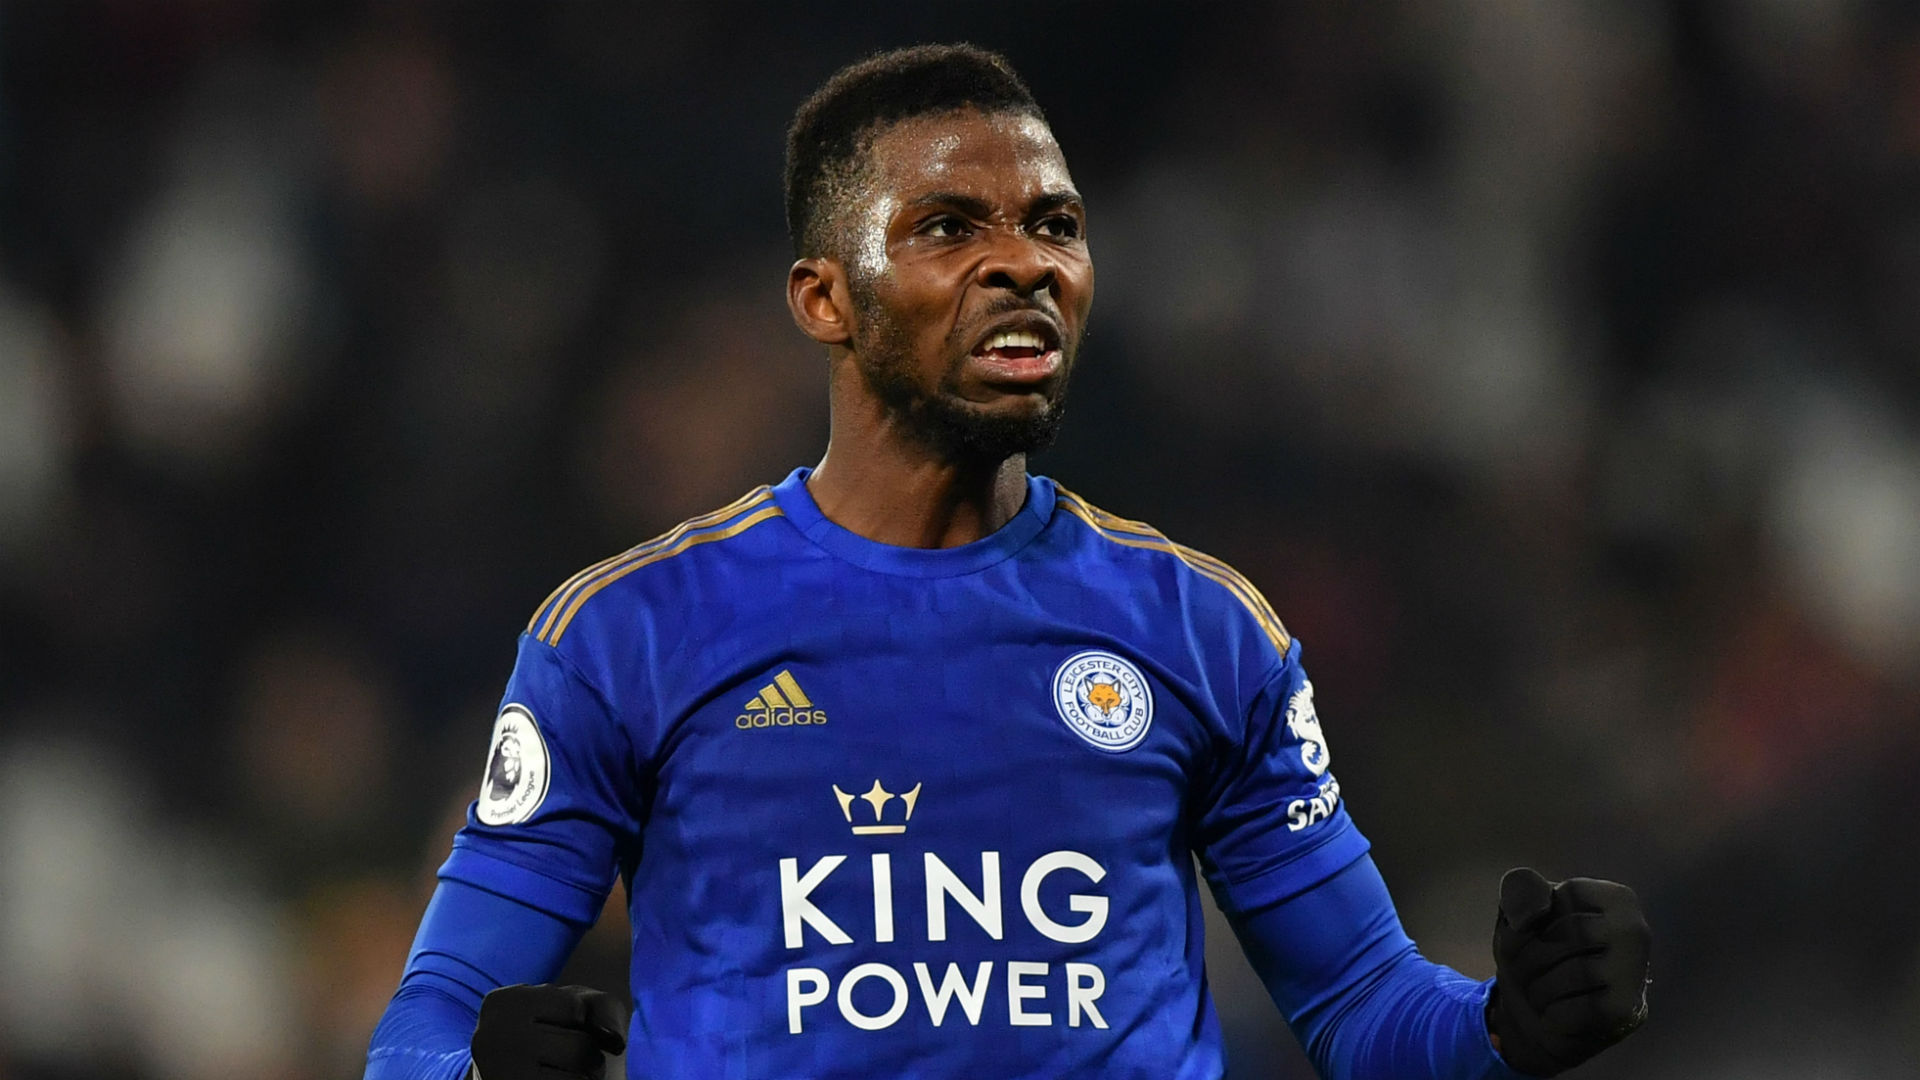 Iheanacho remains a valuable player for Leicester City – Rodgers